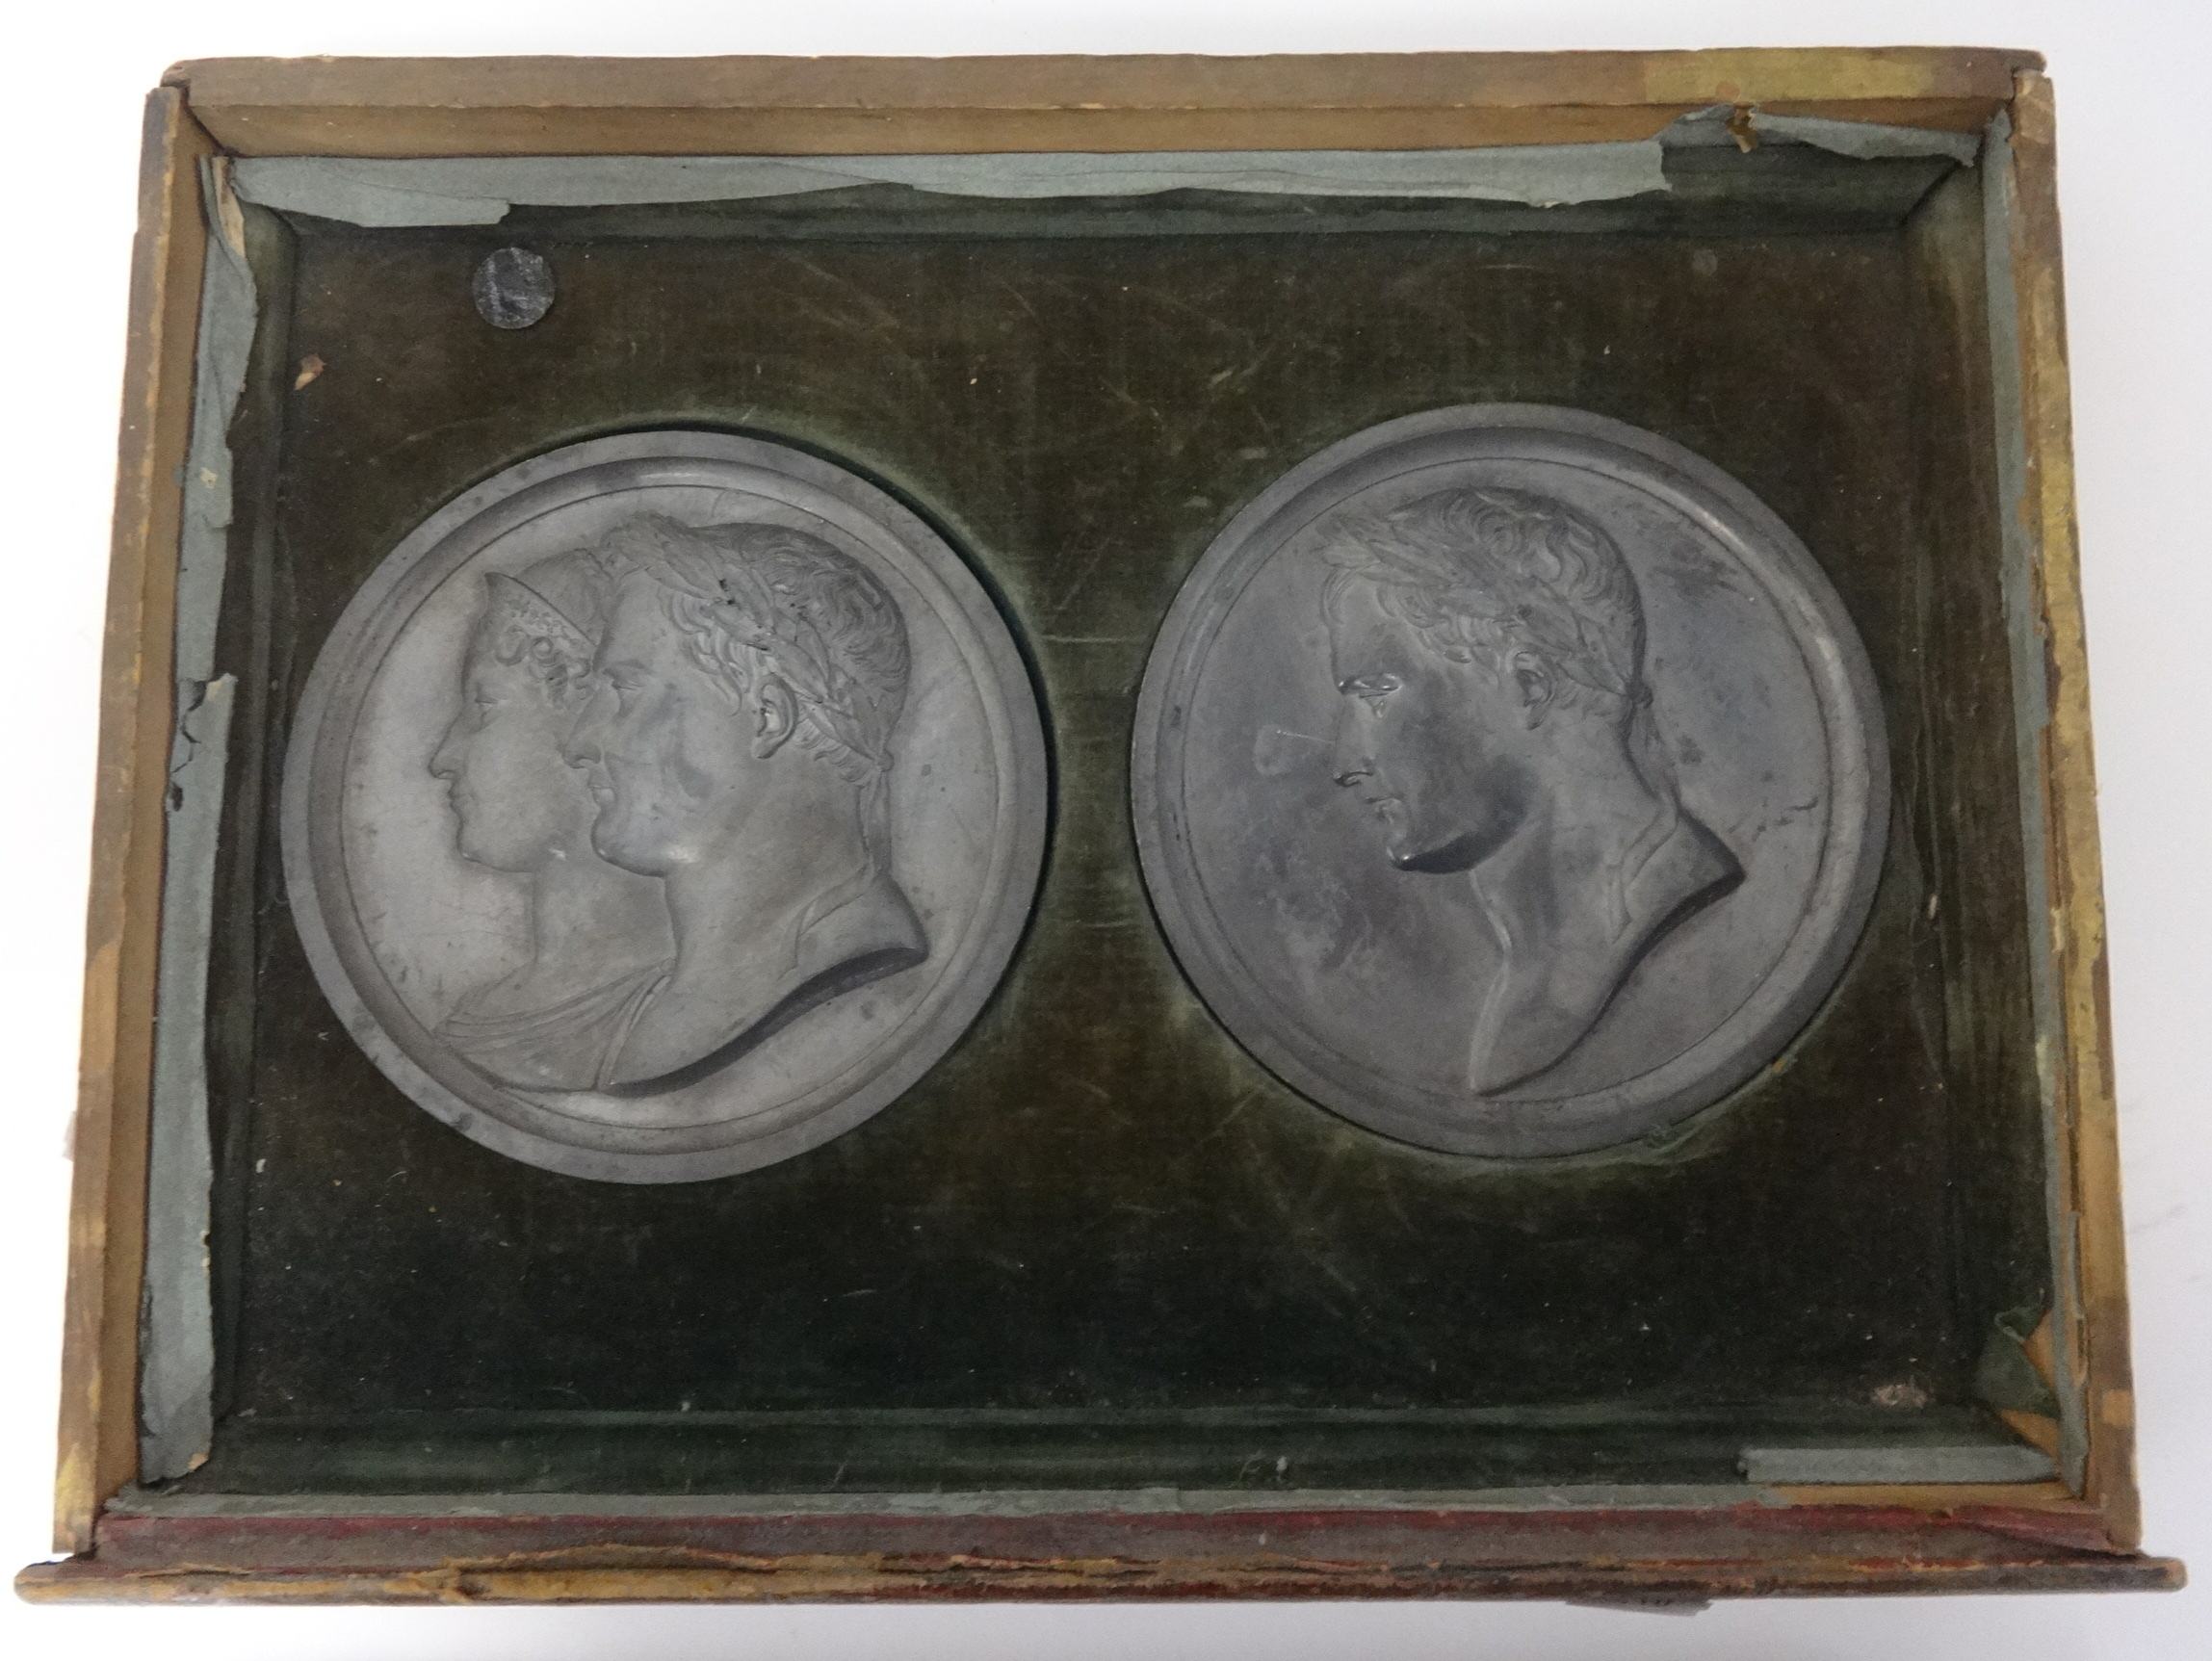 Lot 020 - An interesting collection of ten historic metal medallions in recess trays including Napoléon